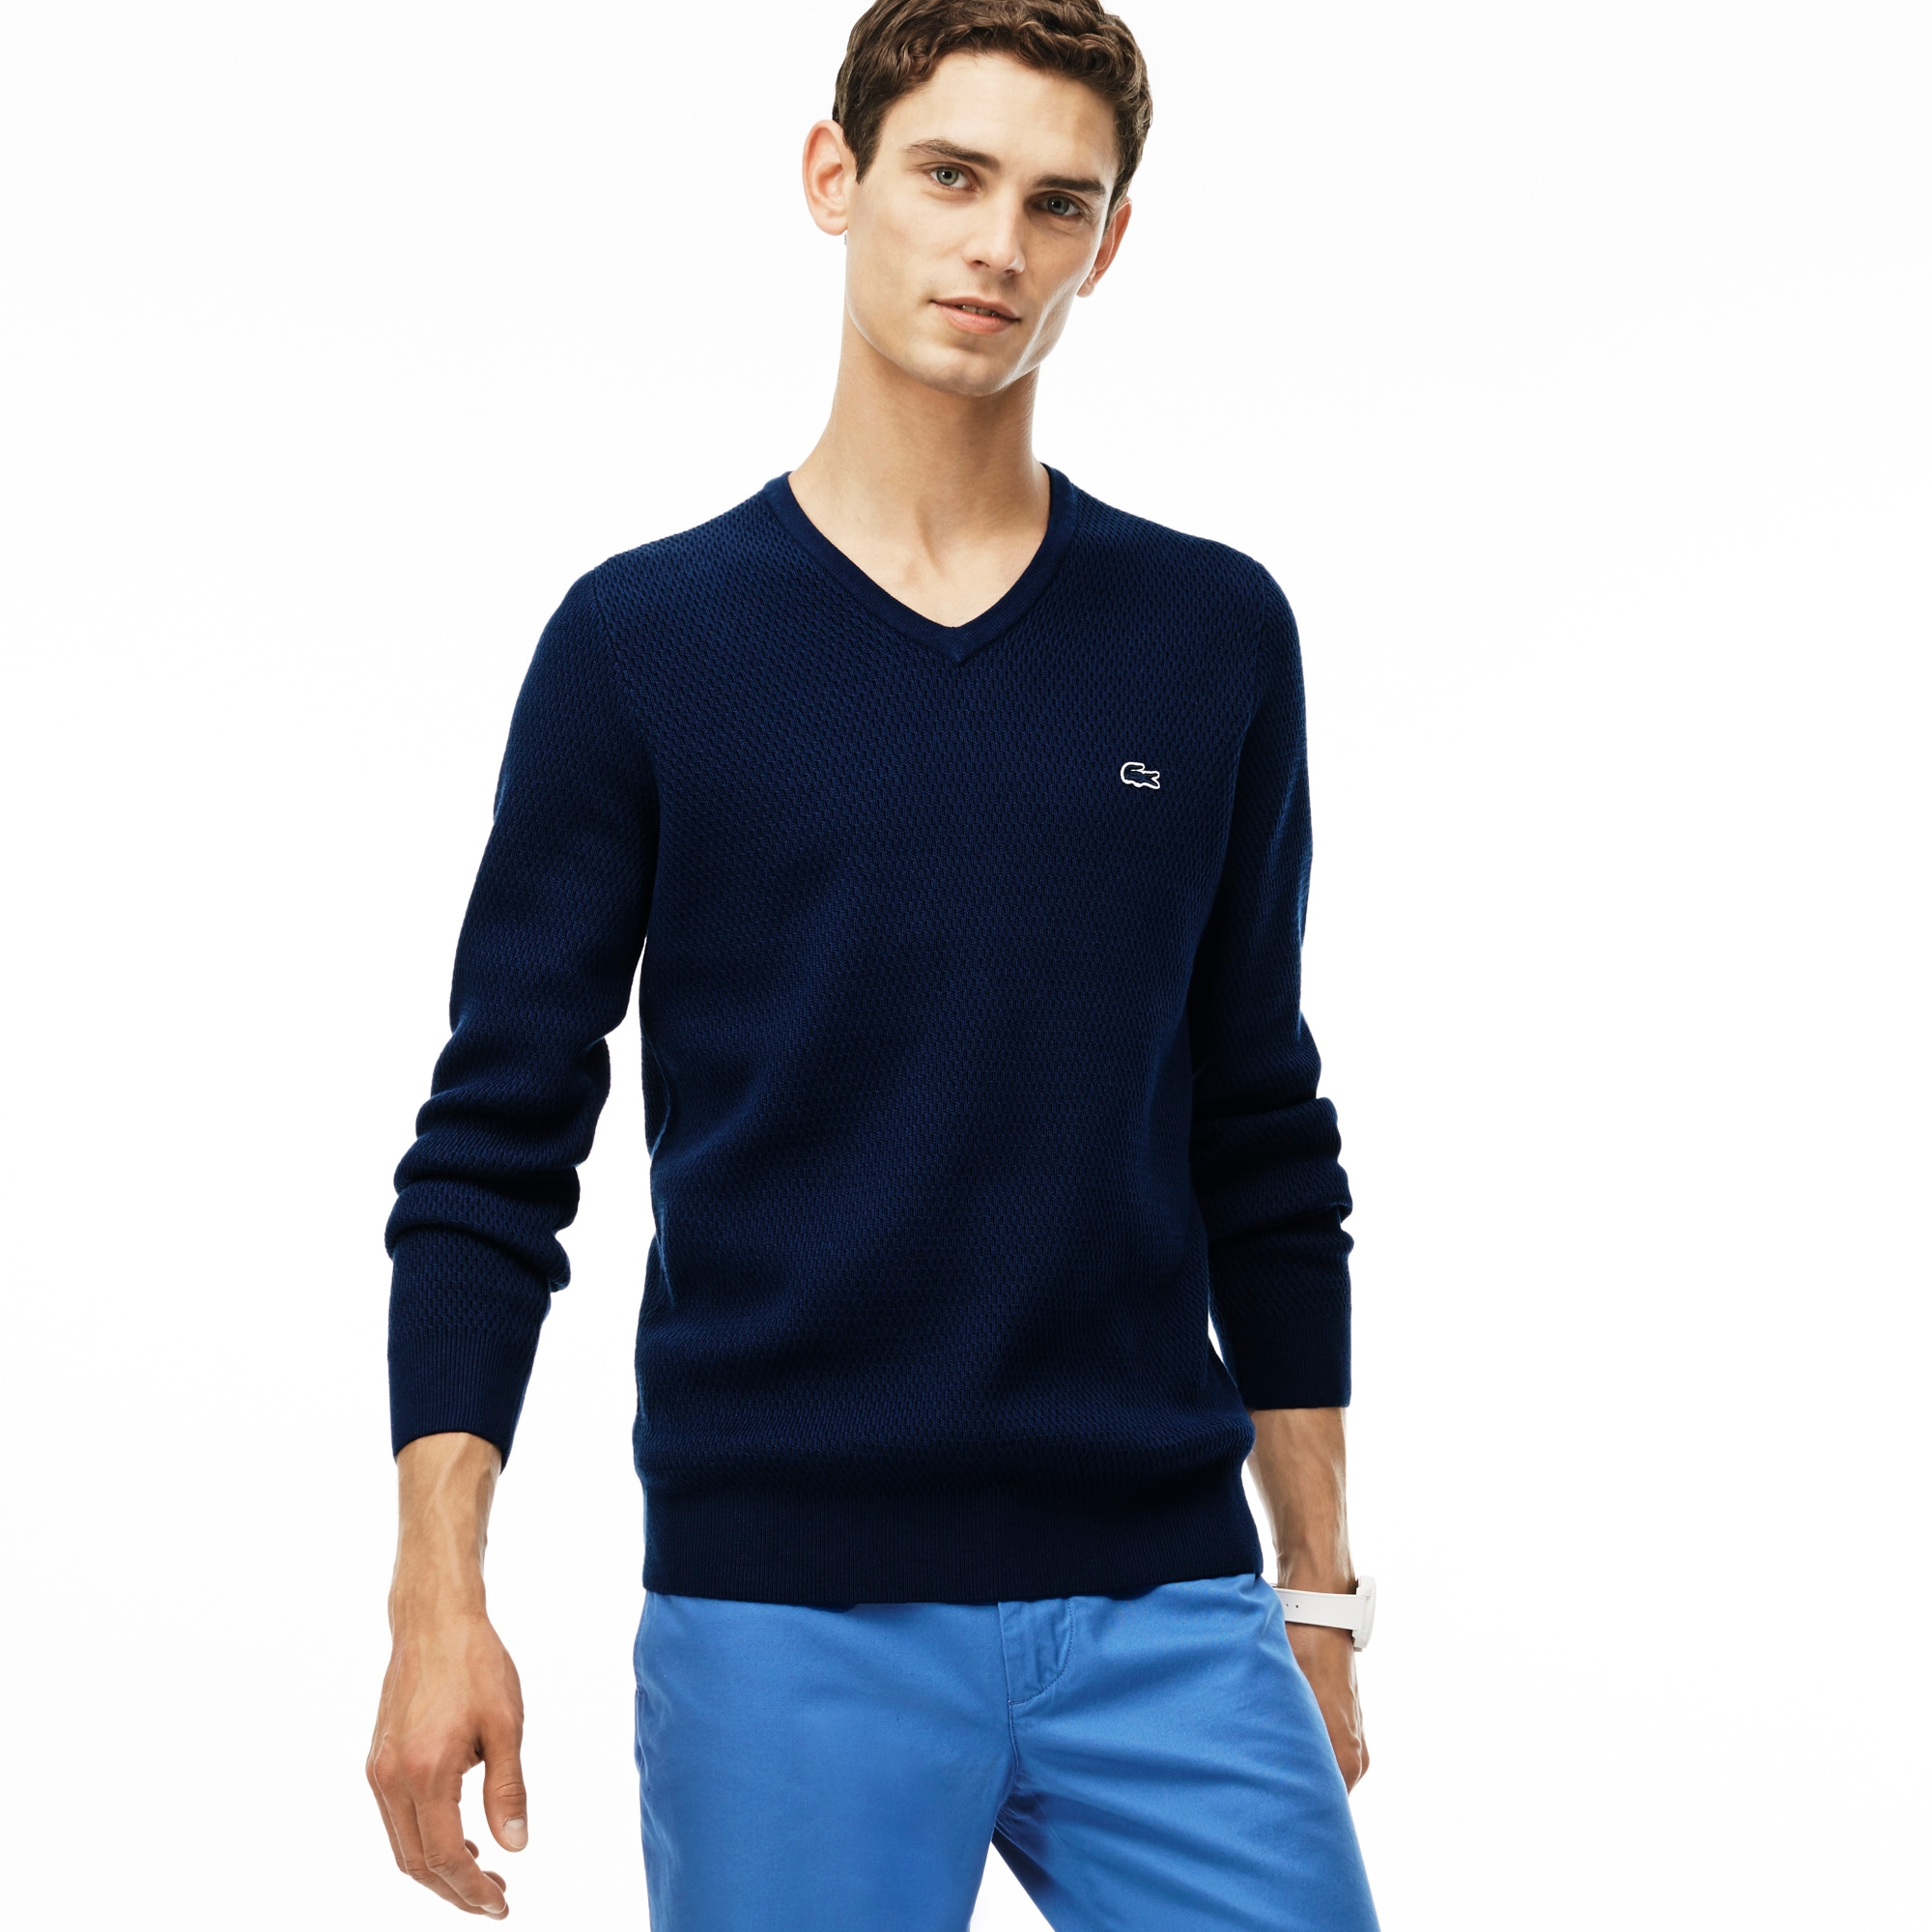 Men's V-Neck Wool and Cotton Blend Sweater